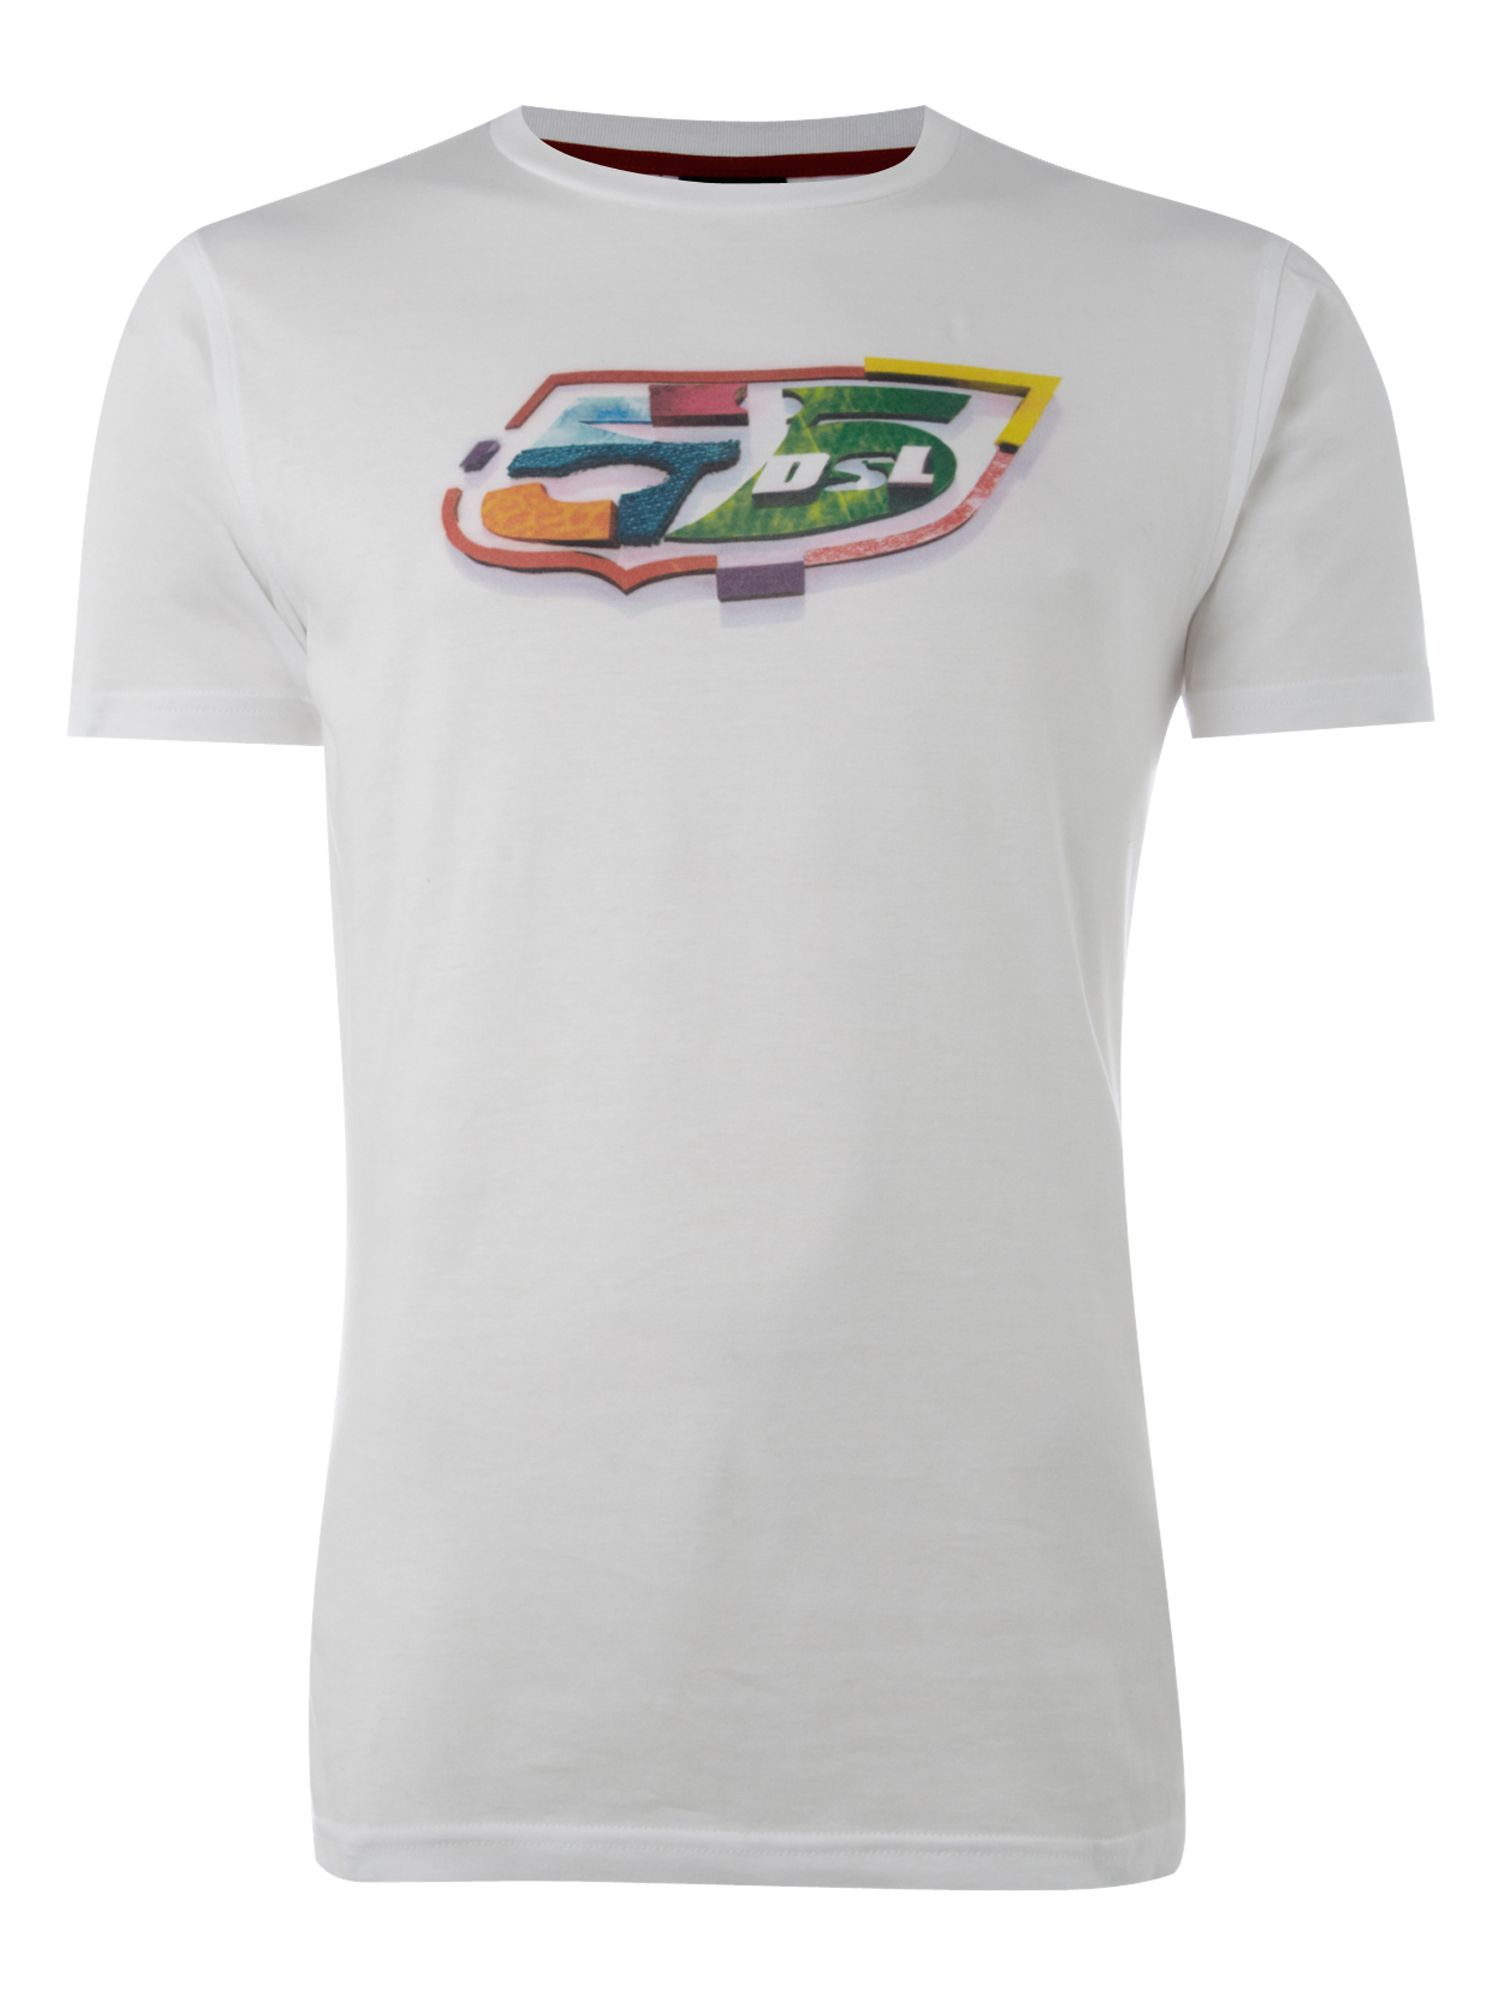 55 DSL Mens 55 DSL Colourful T-shirt, White product image